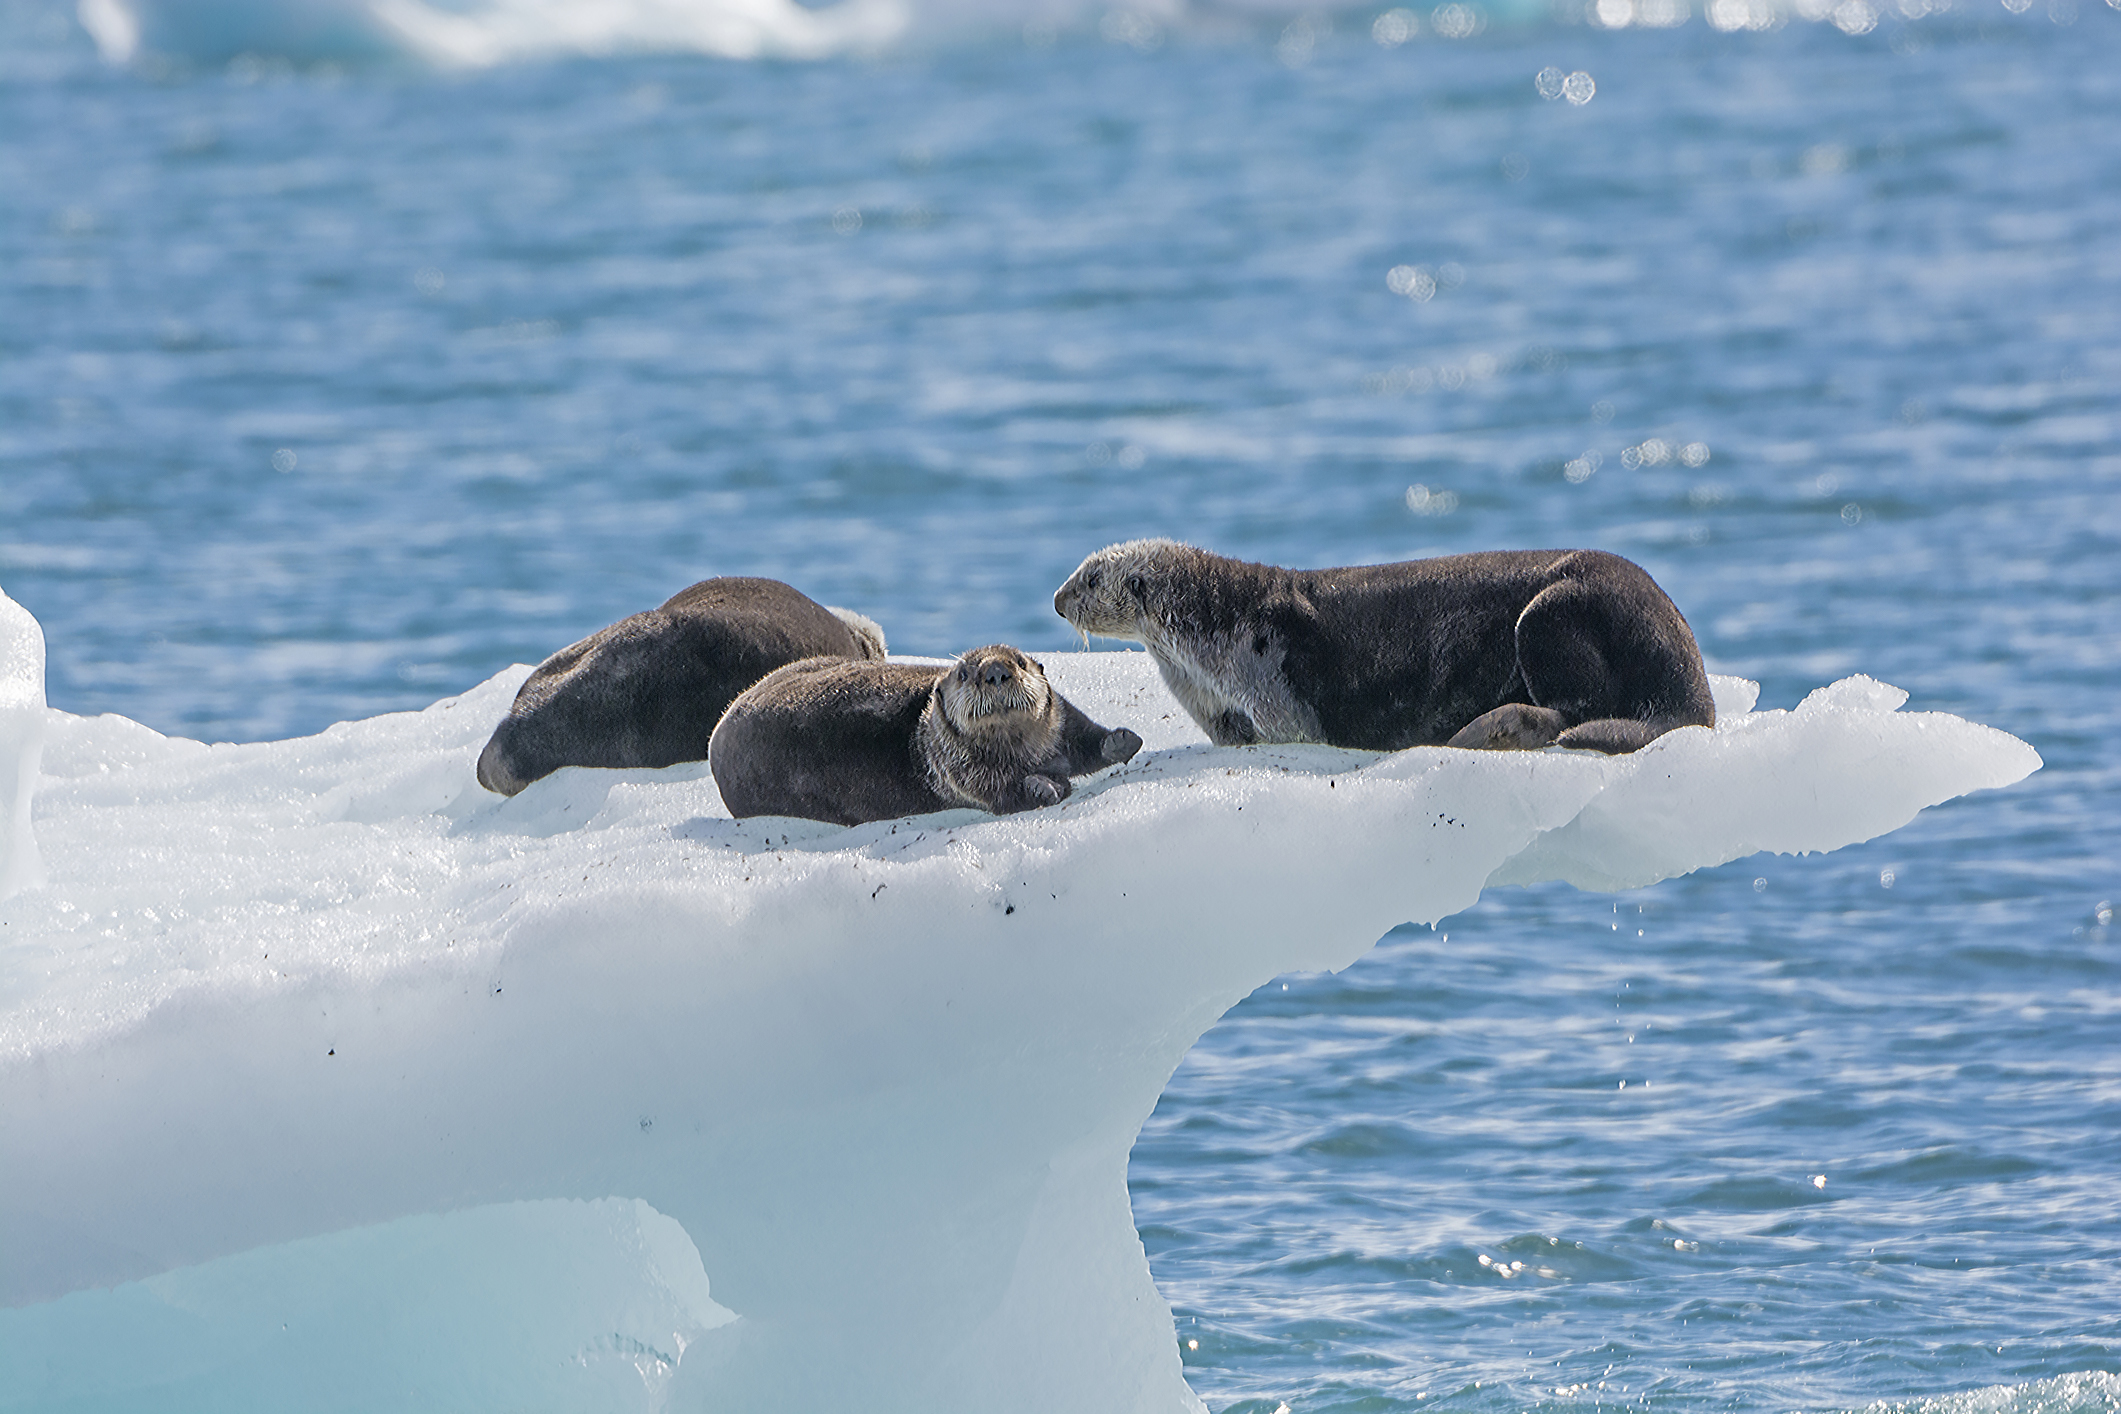 Otters on an ice shelf